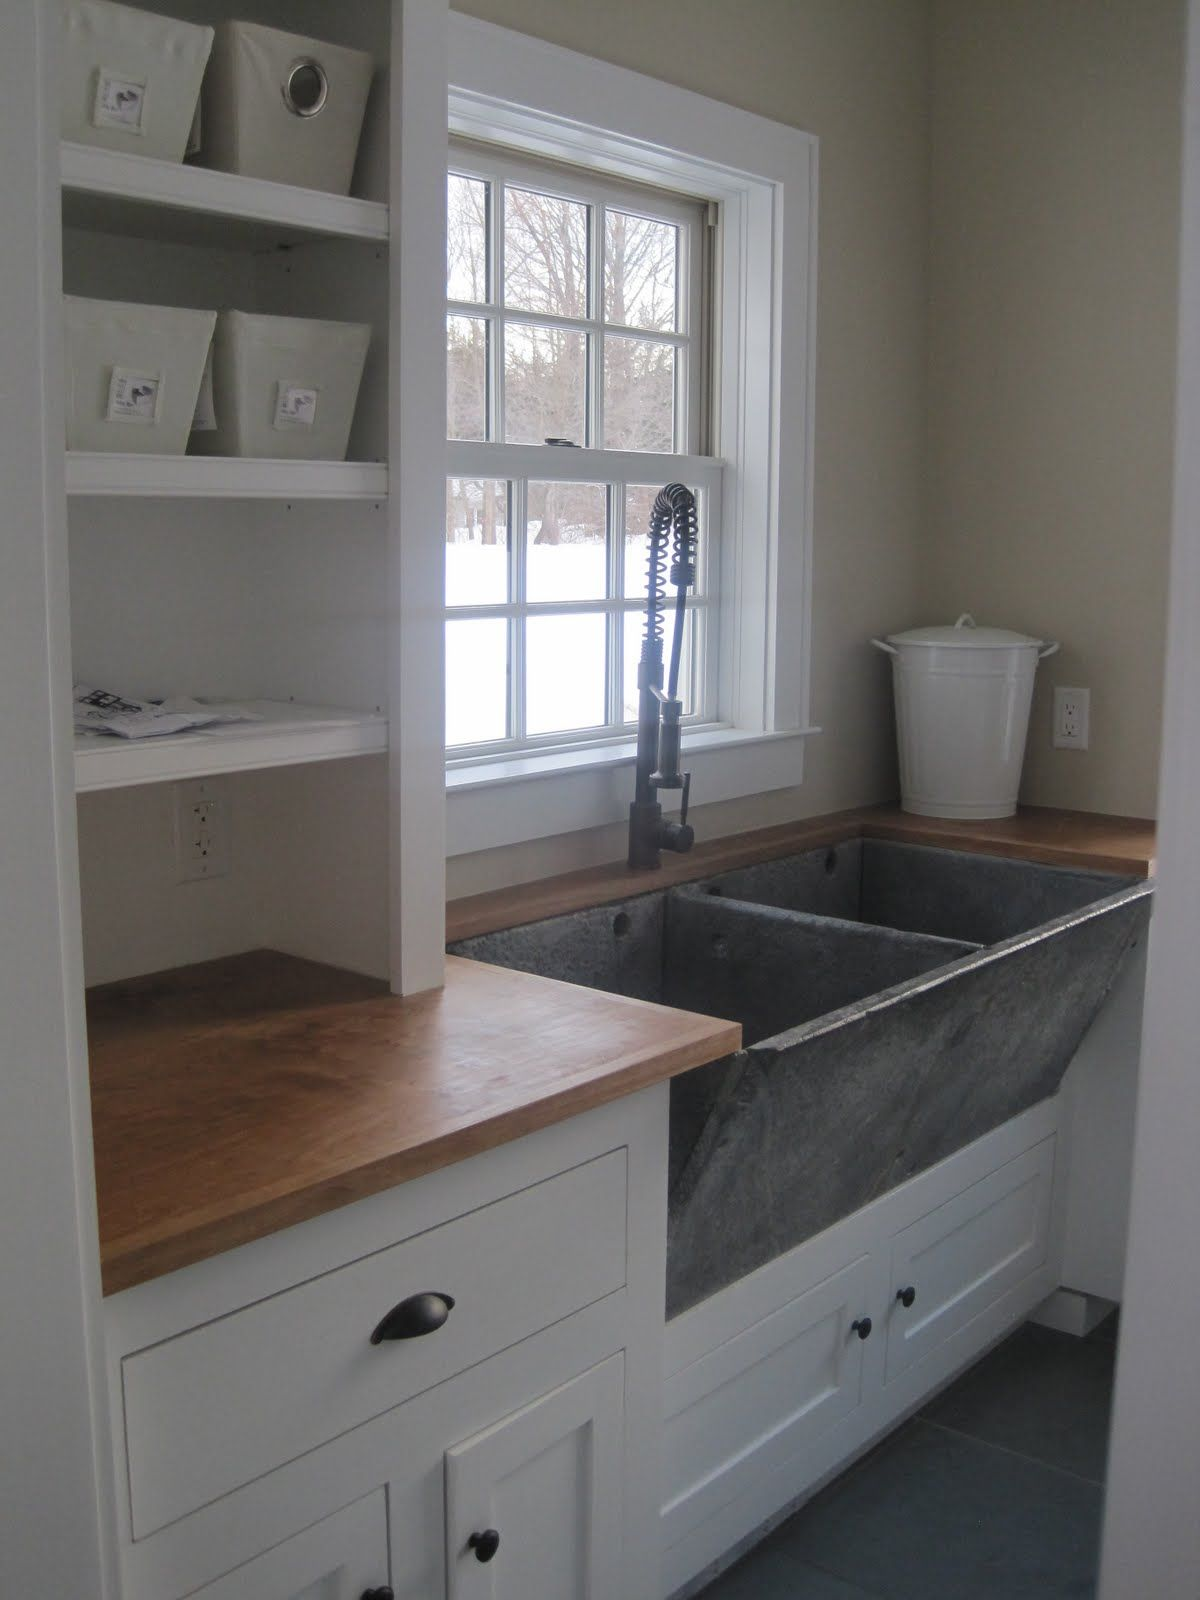 I love the old concrete or stone utility sink it could be a bit shallower or not divided i like the feel of using an rustic element with finished